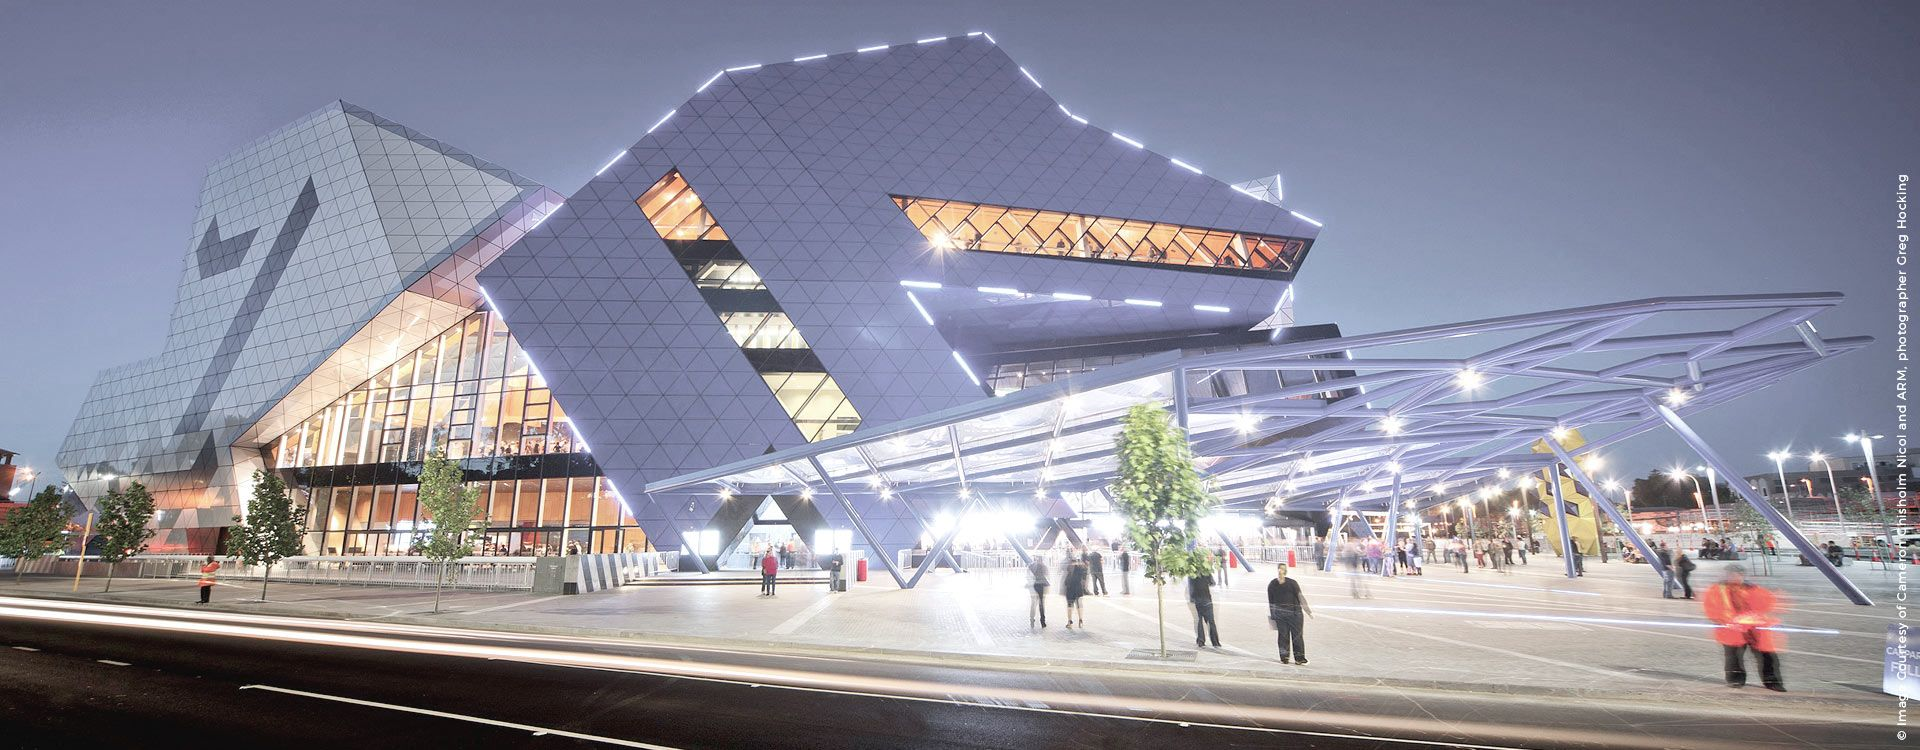 bnr-Perth-Arena_Sports-and-Stadia